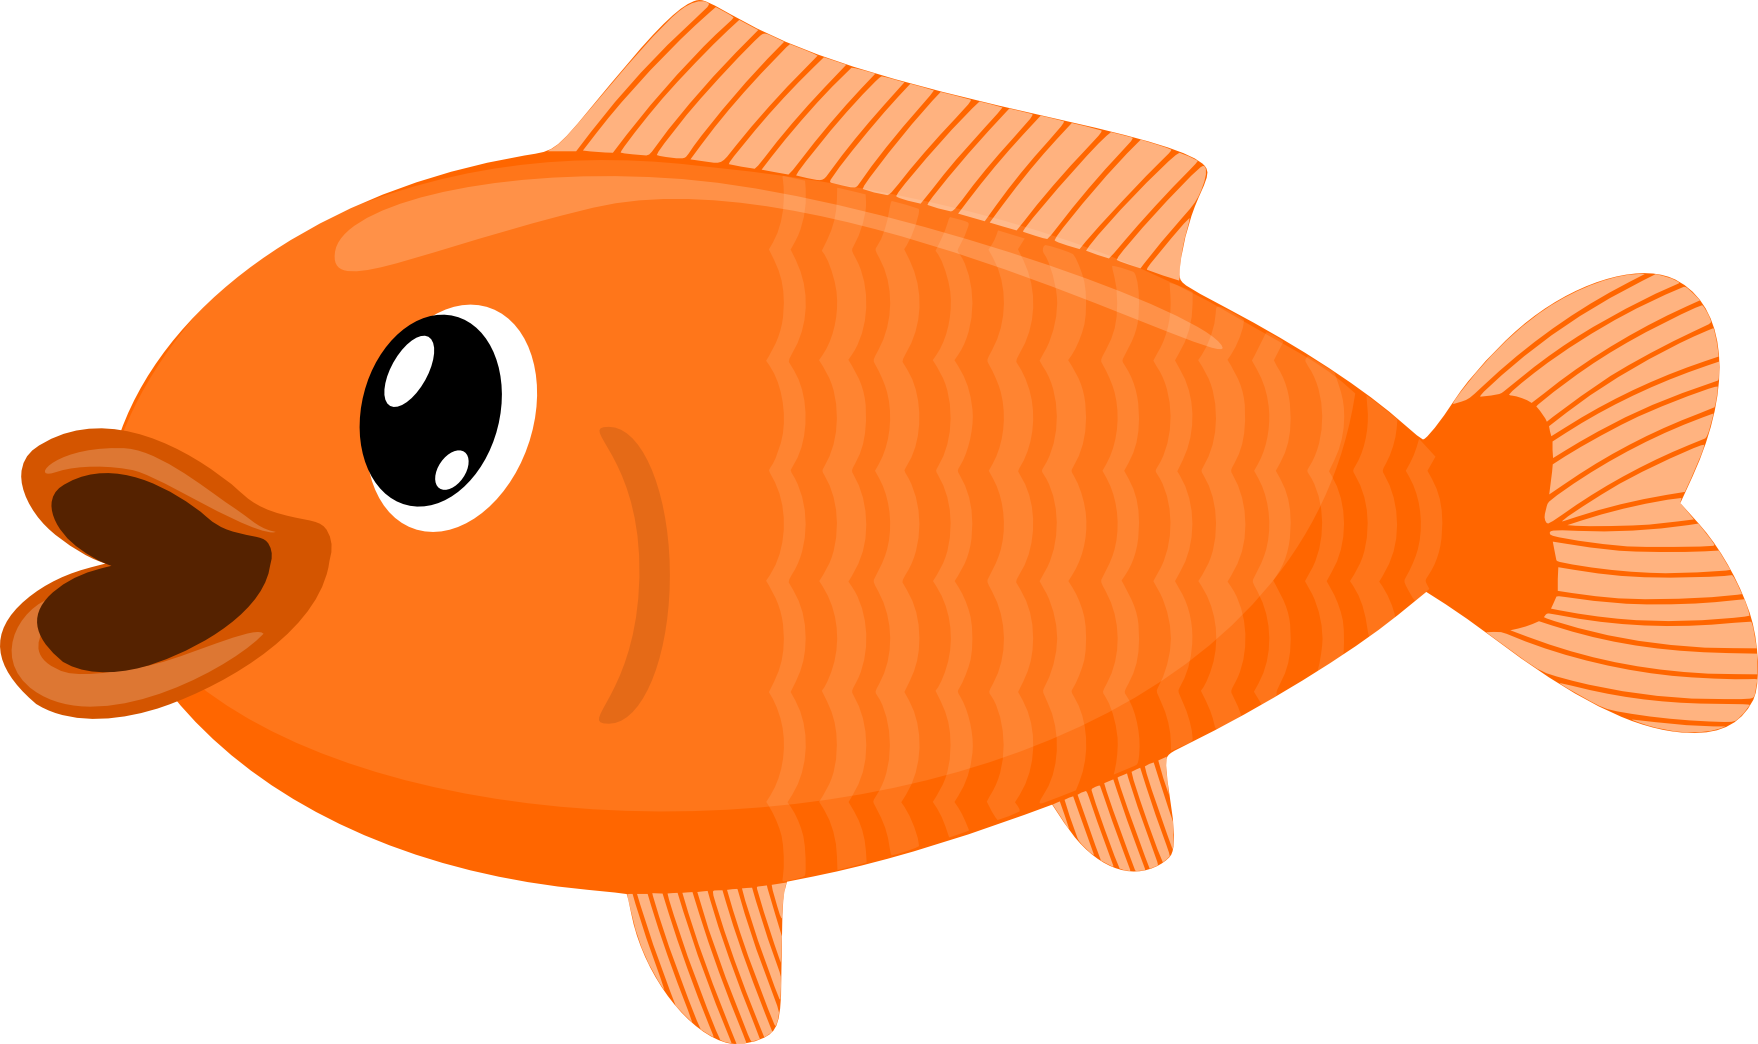 Koi at getdrawings com. Fish swimming clipart